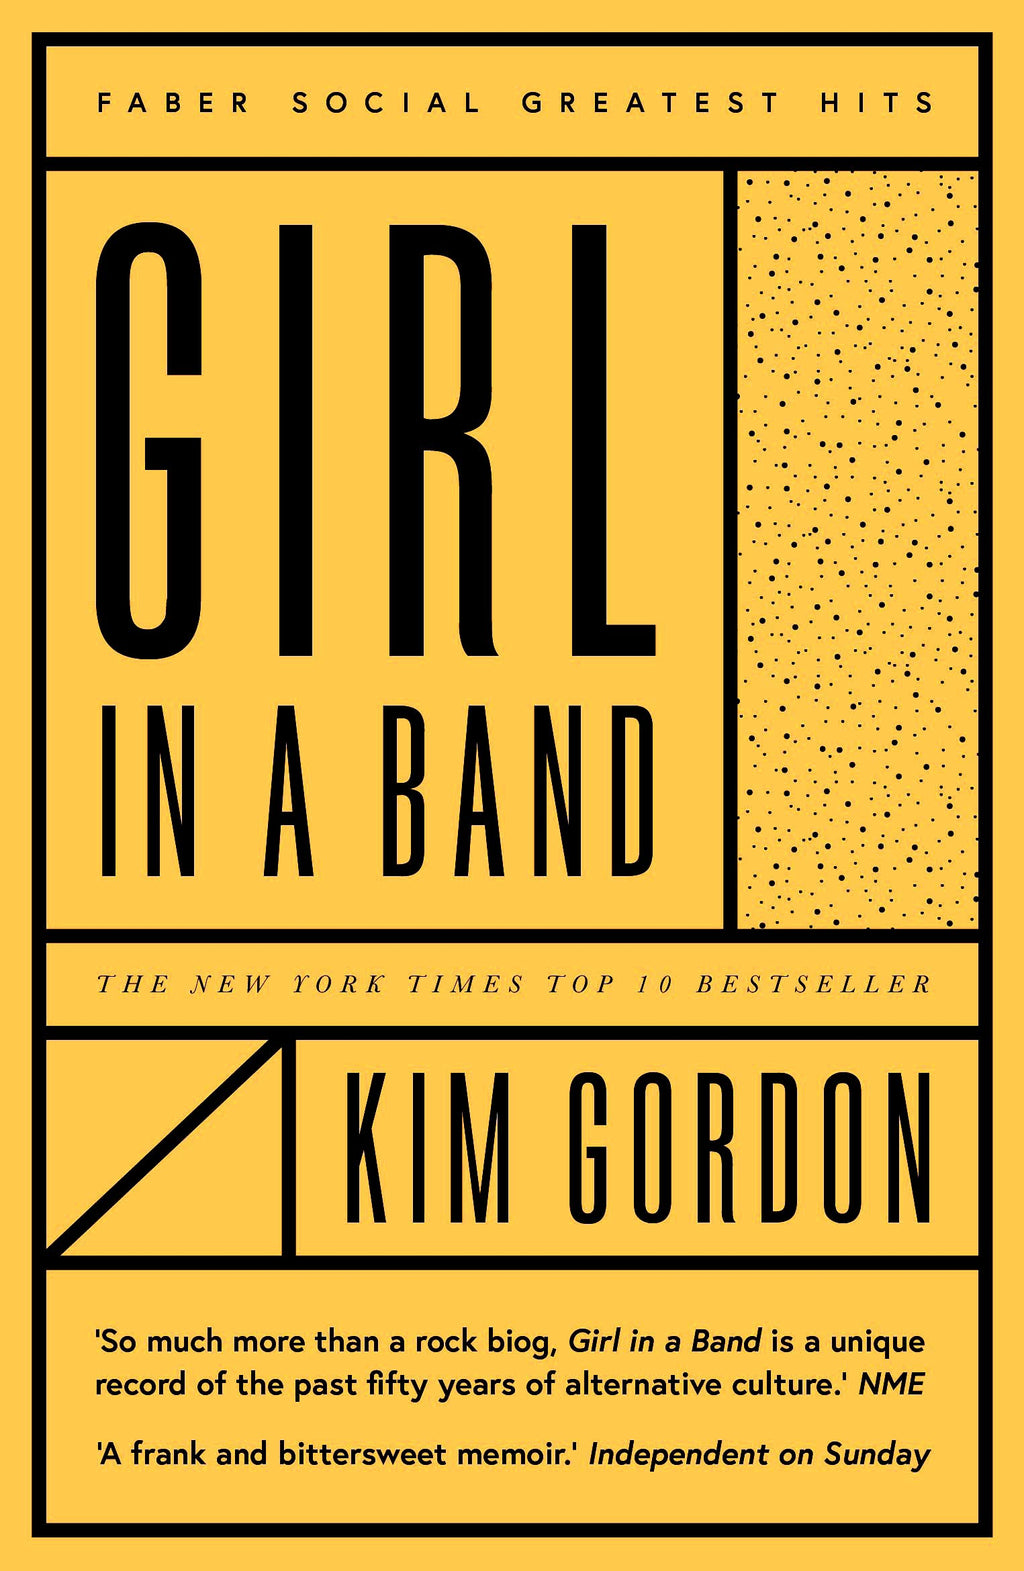 Kim Gordon - Girl in a Band [Faber Social Greatest Hits]